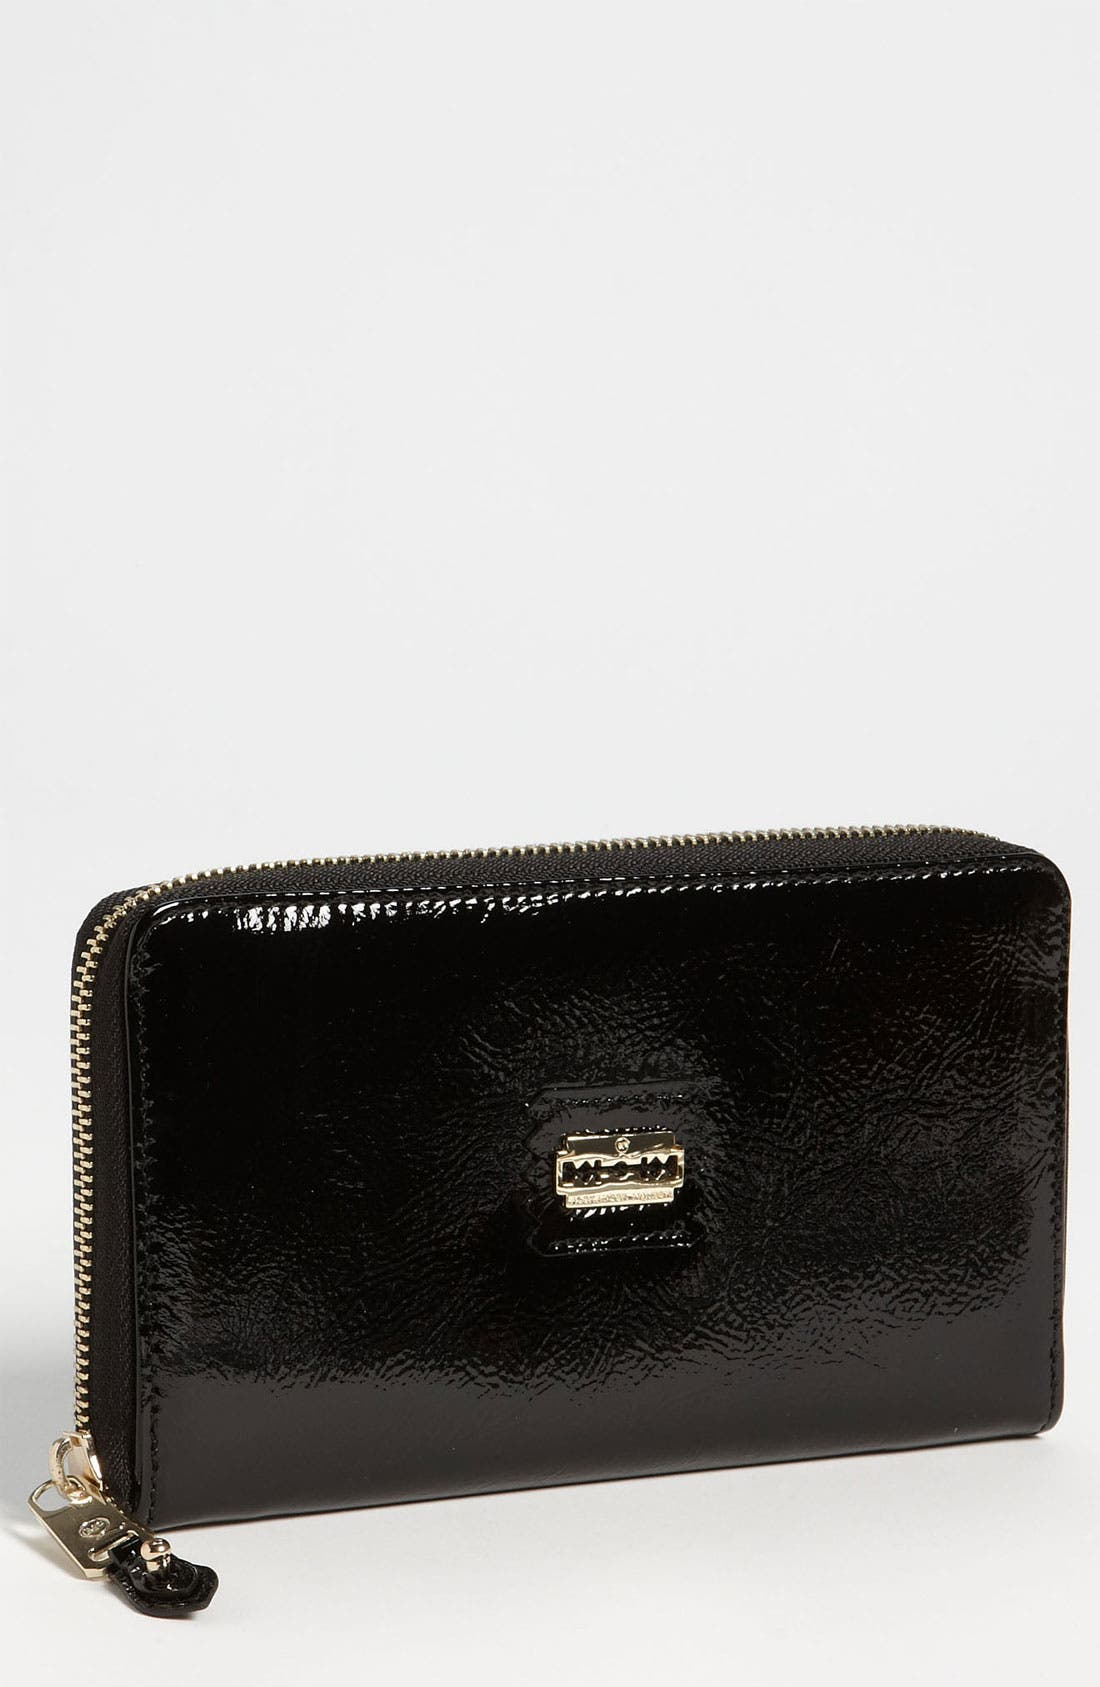 Main Image - McQ by Alexander McQueen 'East West' Zip Around Wallet